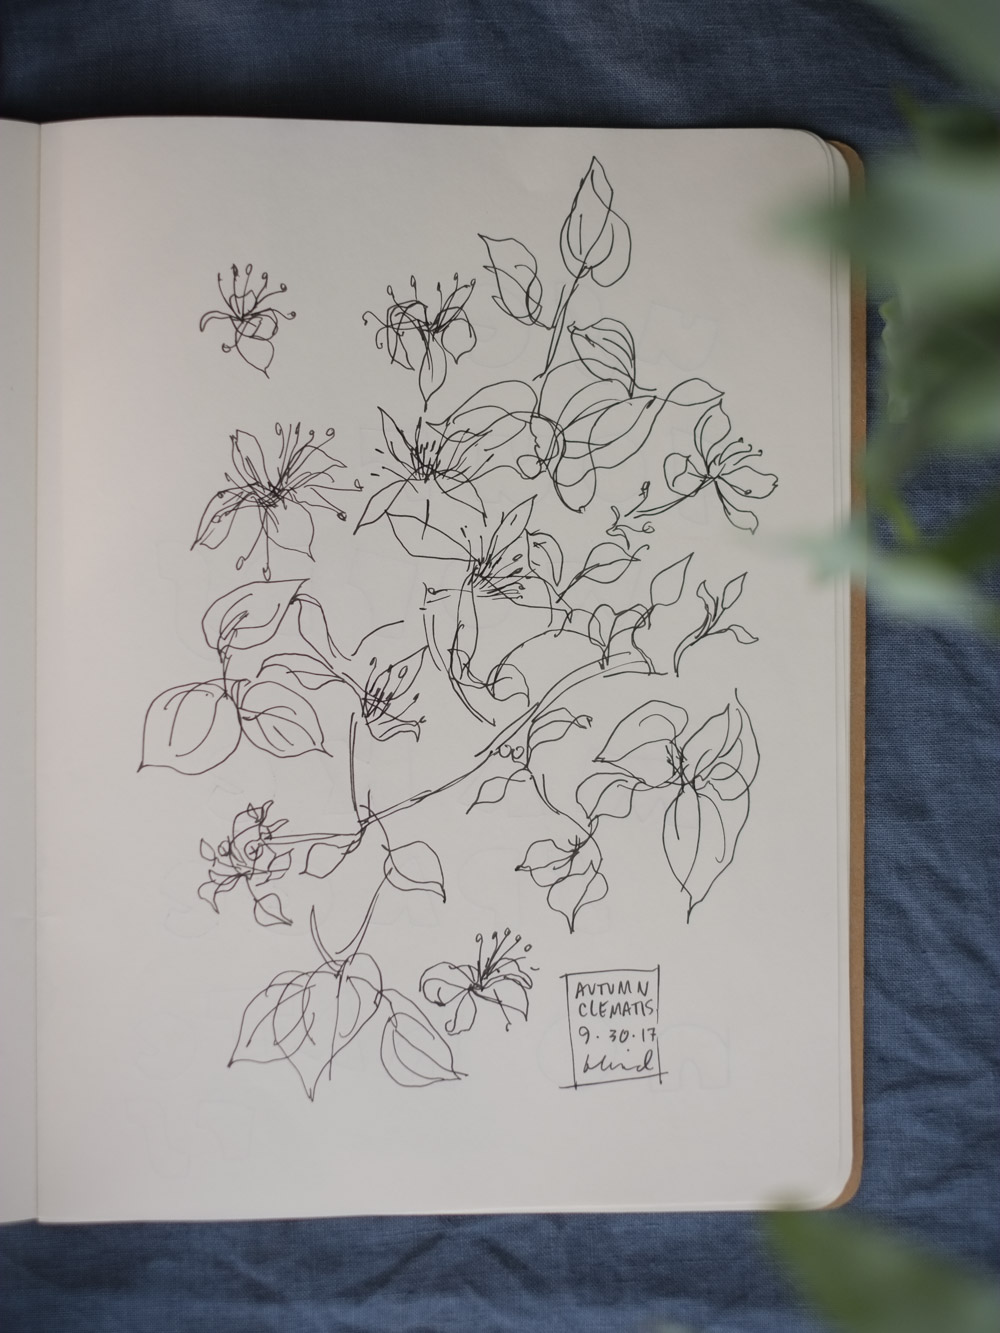 Erin_Ellis_daily_botanical_blind_drawings_sept_2017.jpg-35.jpg